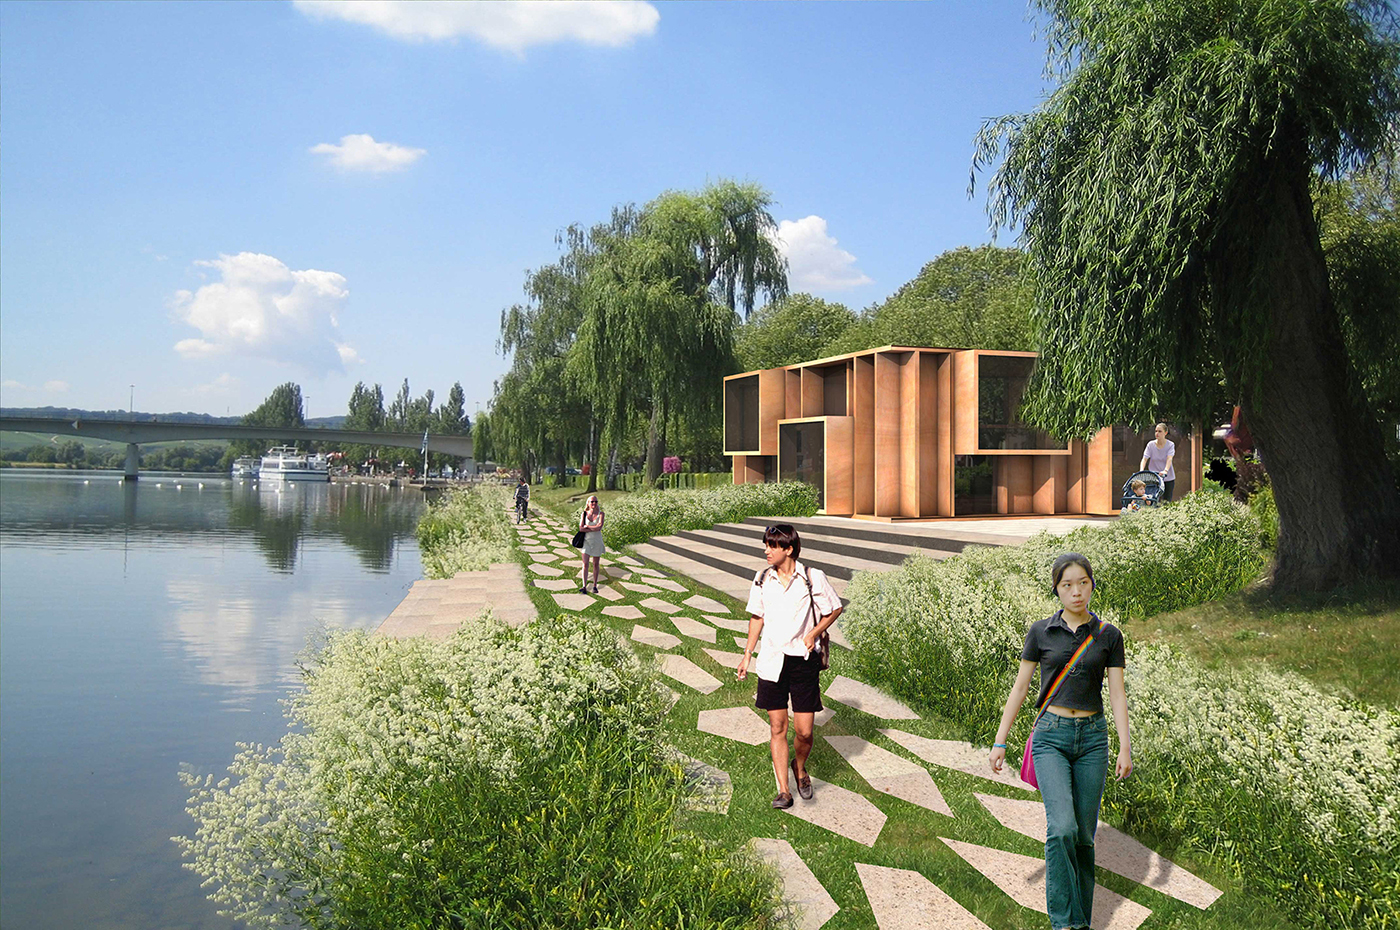 Remich Luxembourg  city images : ... , bicycle path and anti flooding measures remich luxembourg